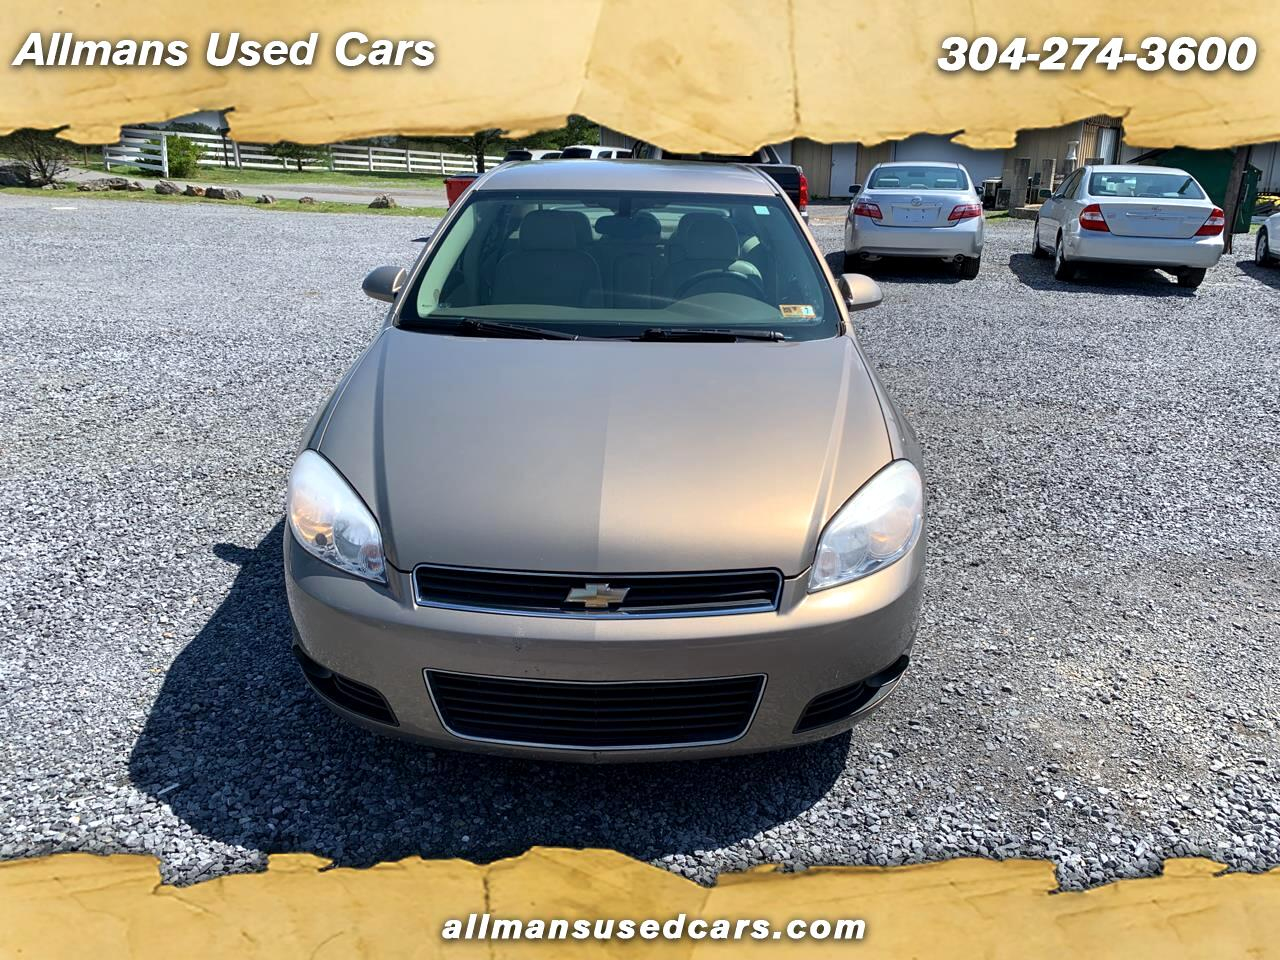 Used 2006 Chevrolet Impala Ltz For Sale In Martinsburg Wv